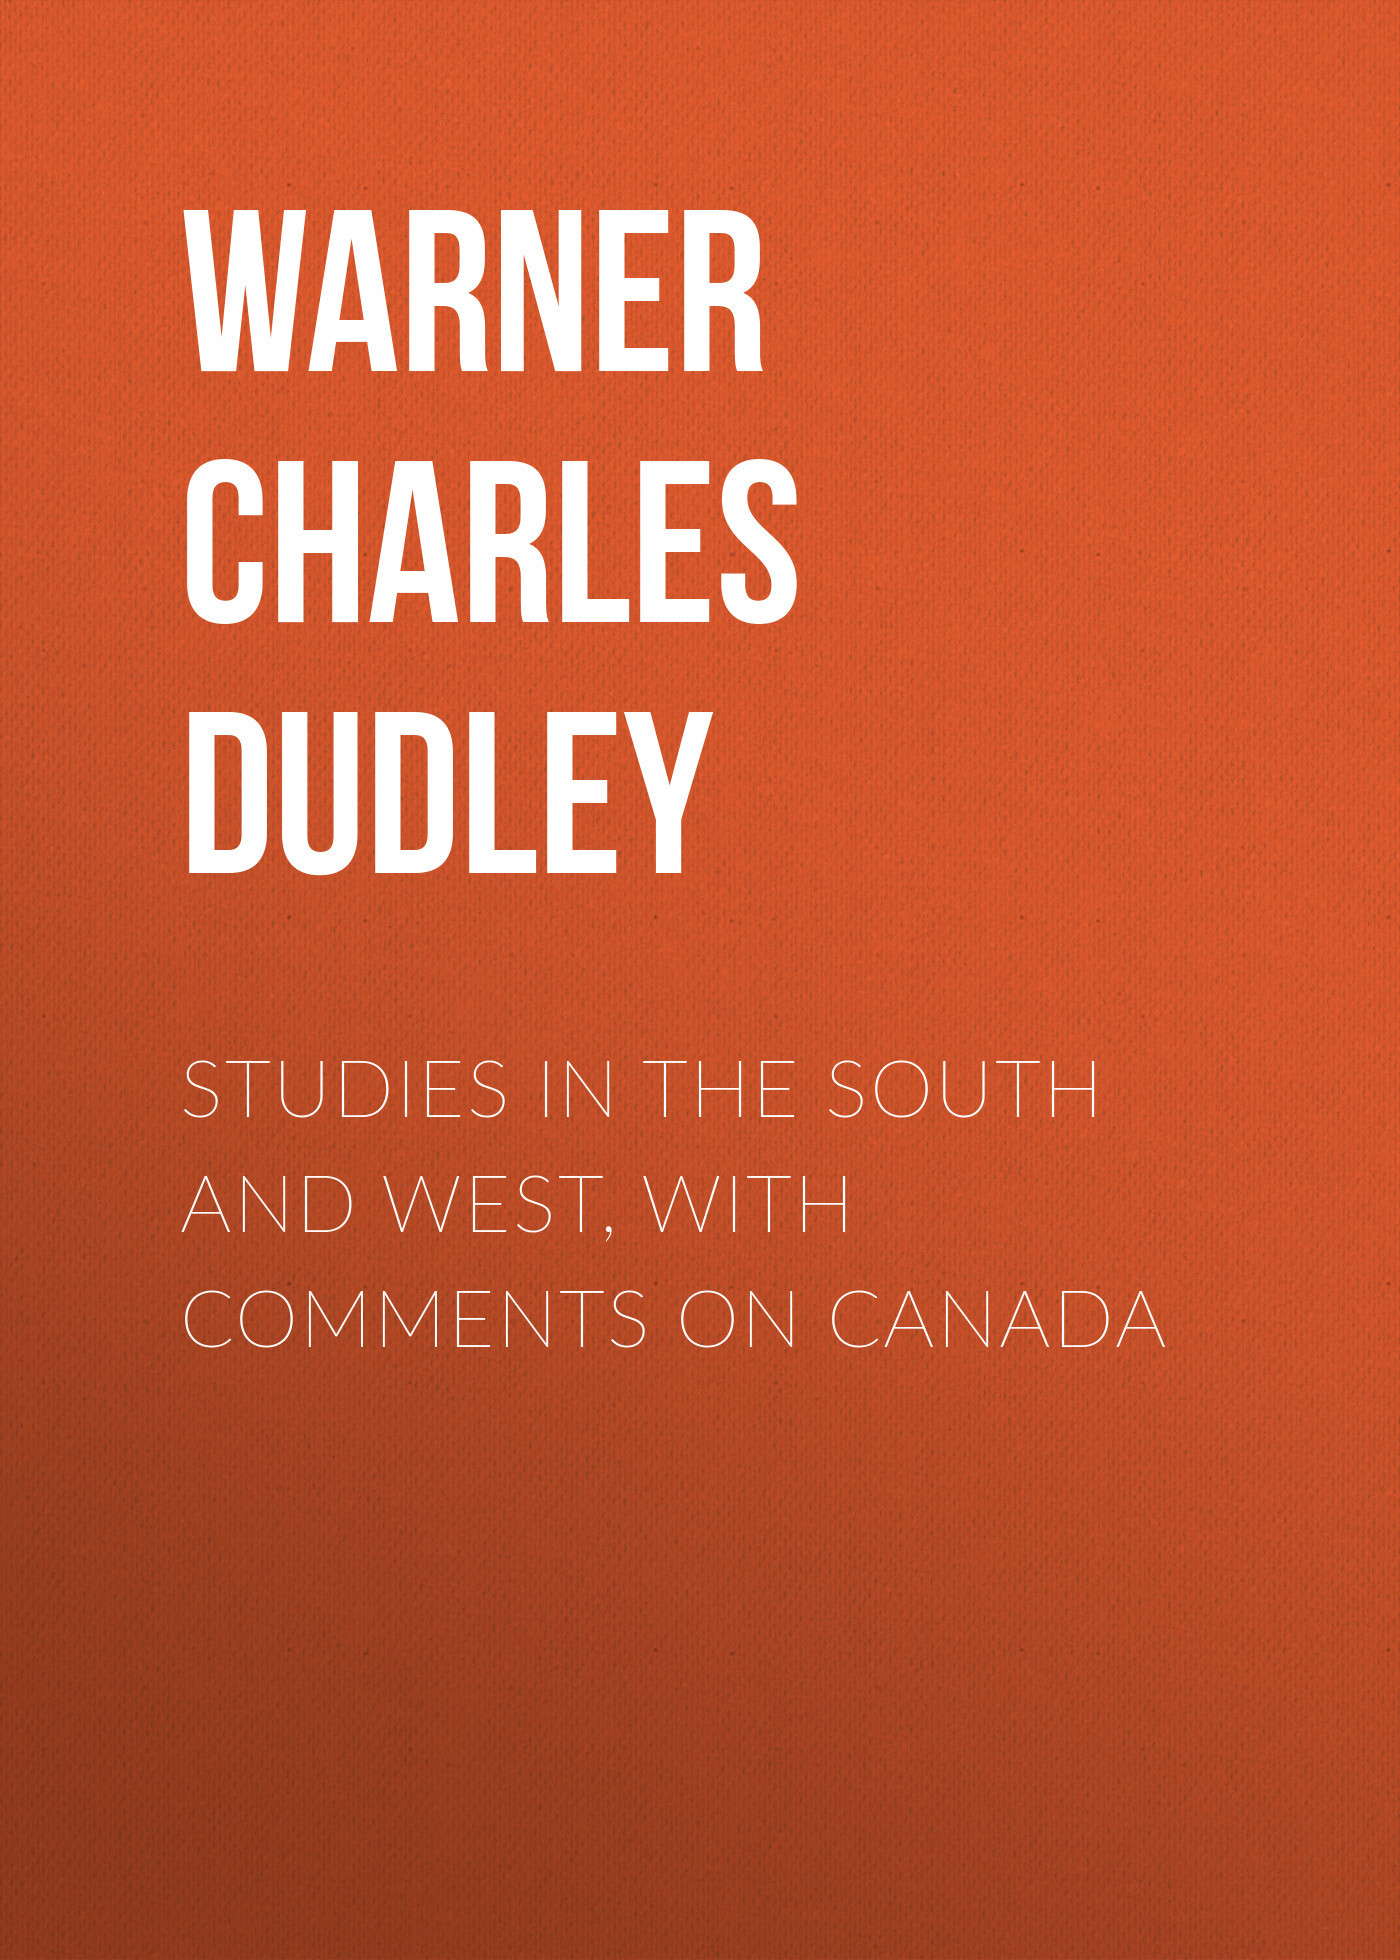 Warner Charles Dudley Studies in The South and West, With Comments on Canada все цены